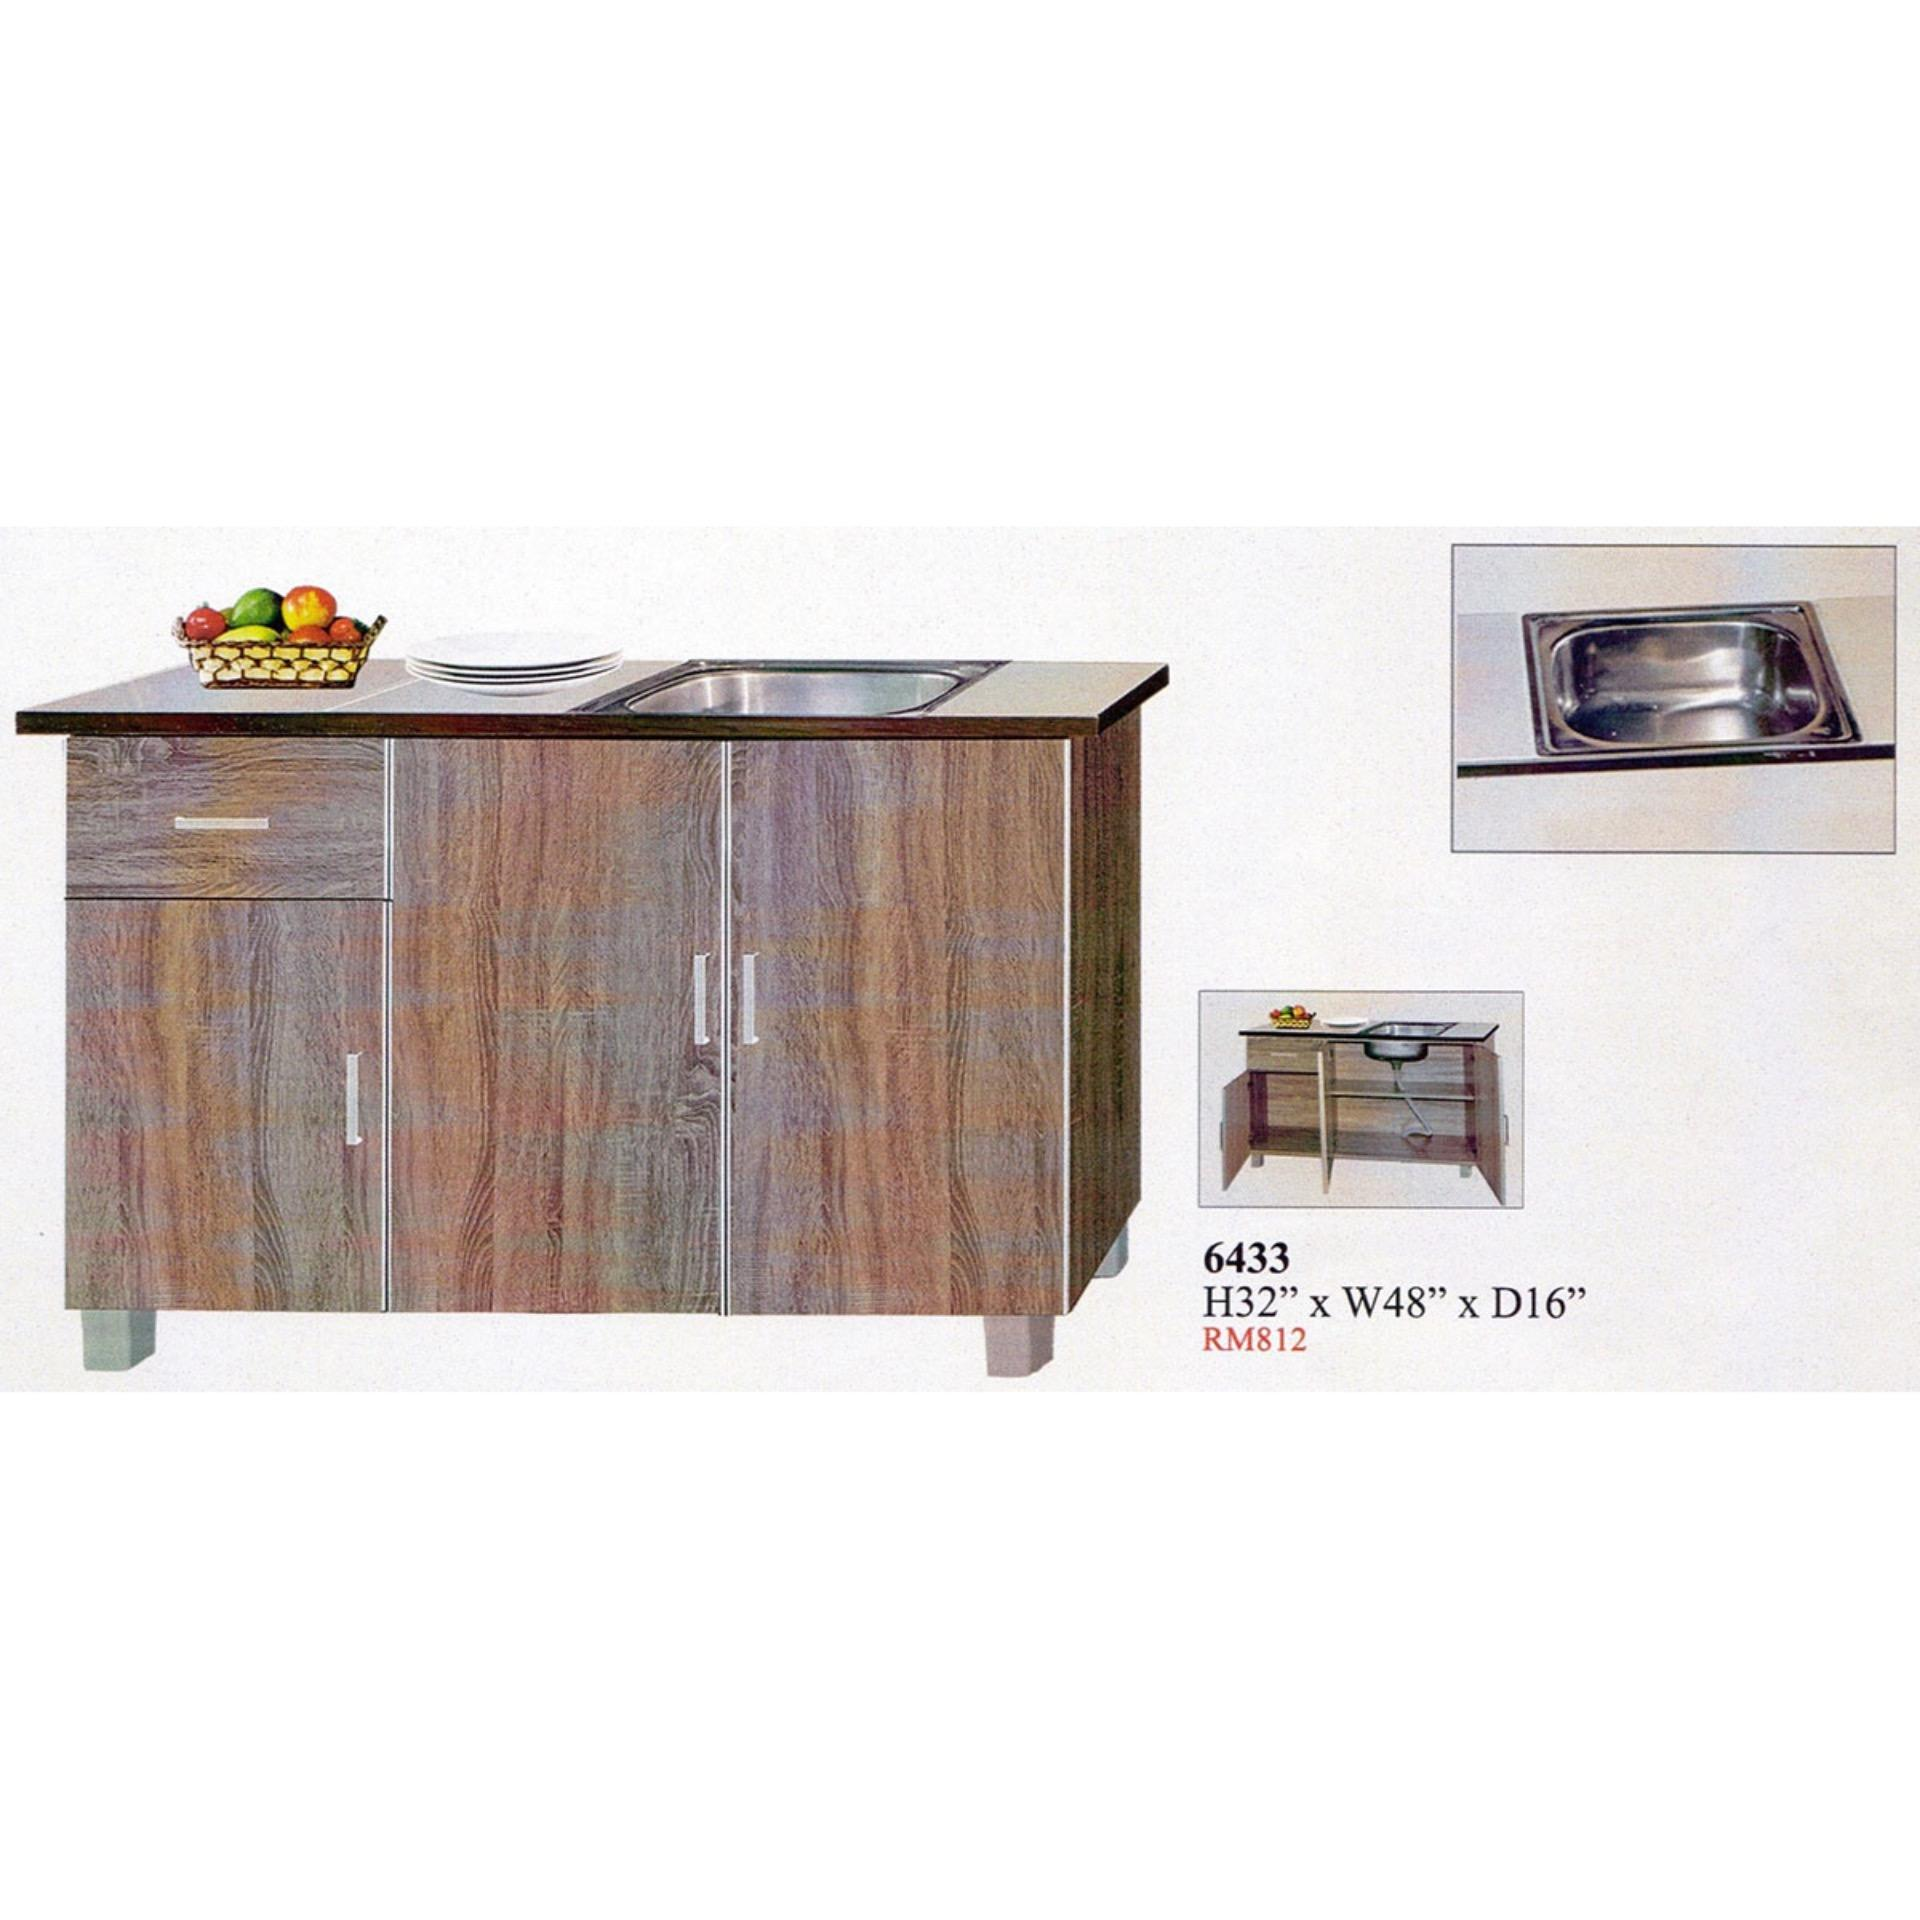 Ready-Fixed 4-Feet Kitchen Cabinet (end 4/30/2021 12:00 AM)